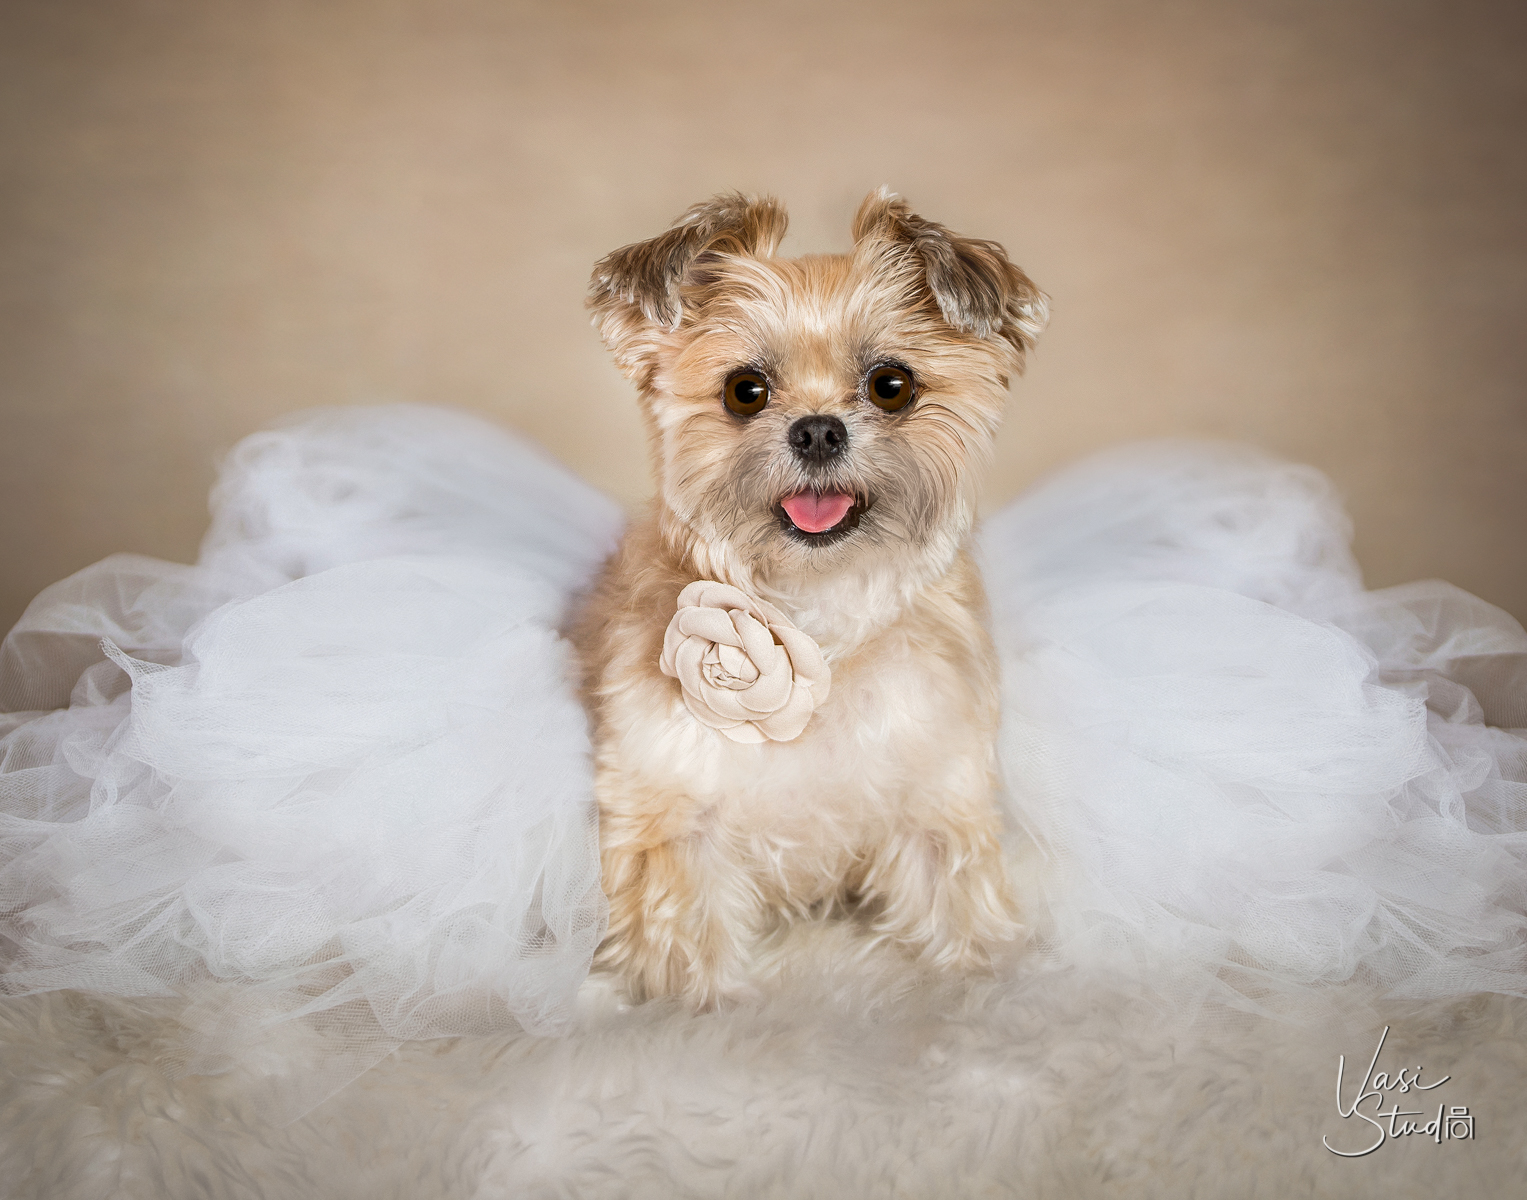 To schedule a pet photography session in Palm Beach Gardens, call 561-307-9875